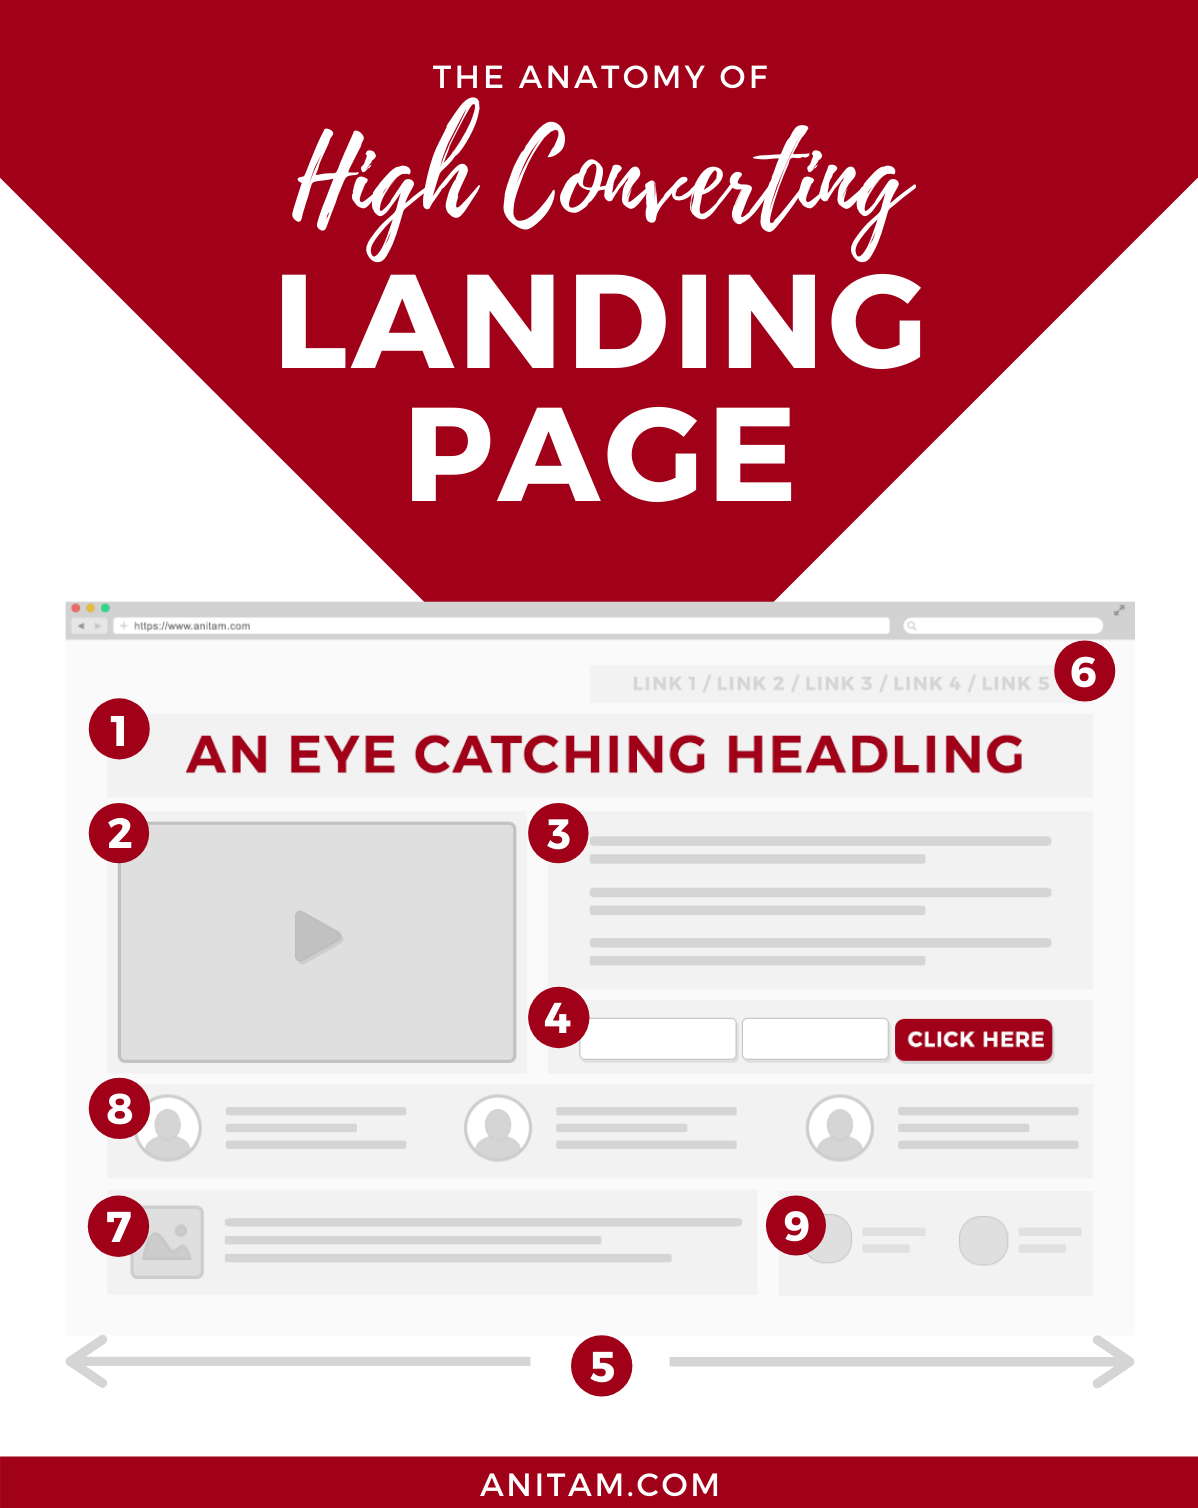 The Anatomy of High Converting Landing Page | AnitaM